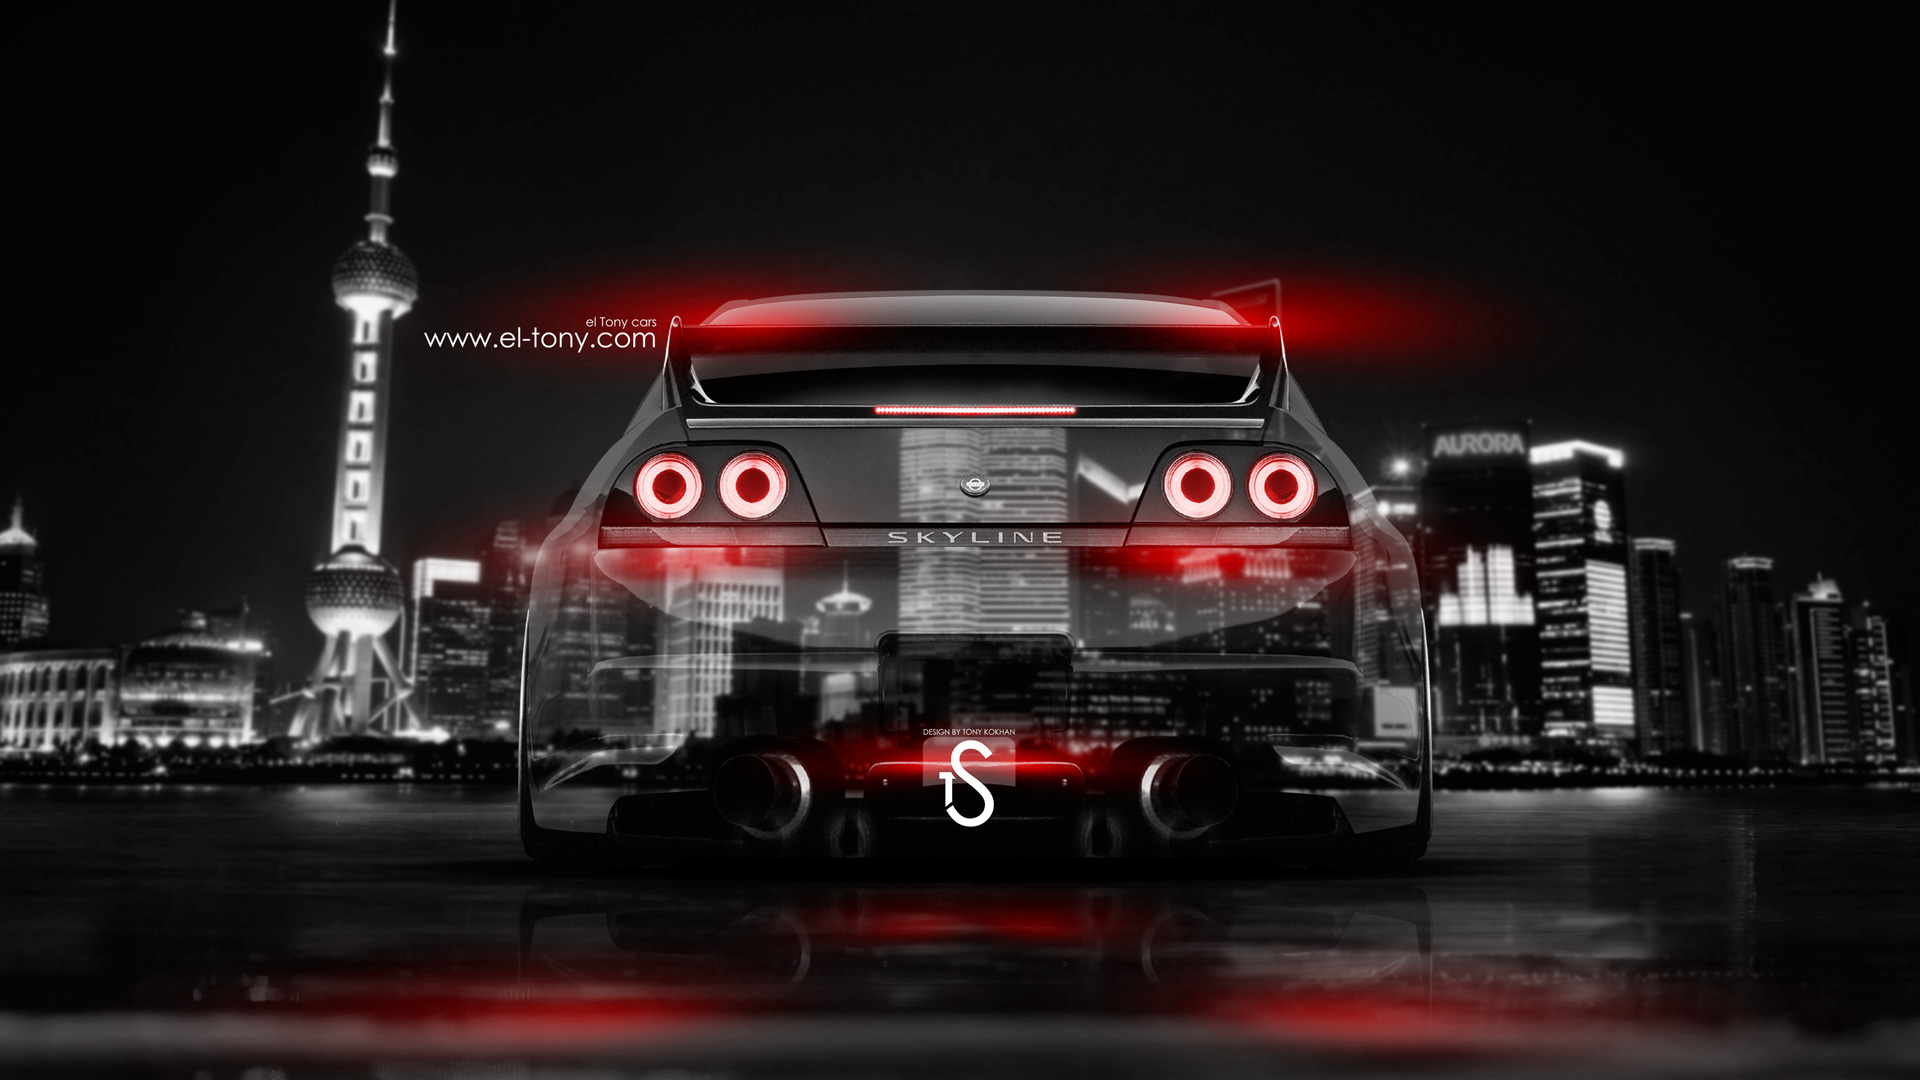 Nissan Skyline Gtr R33 Jdm Back Crystal City Car 2014 El